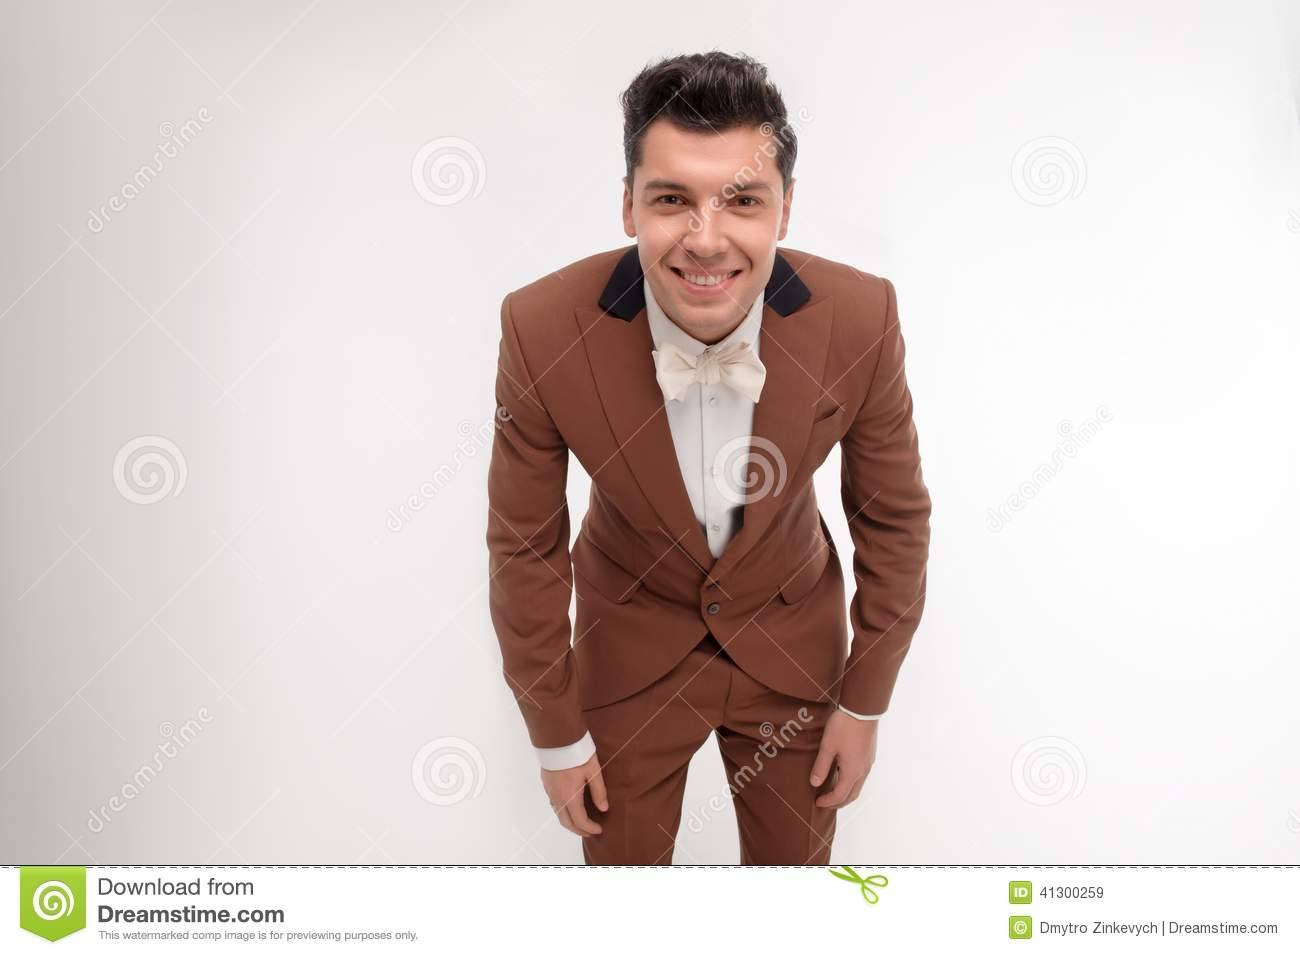 Man In Brown Suit Stock Photo - Image: 41300271